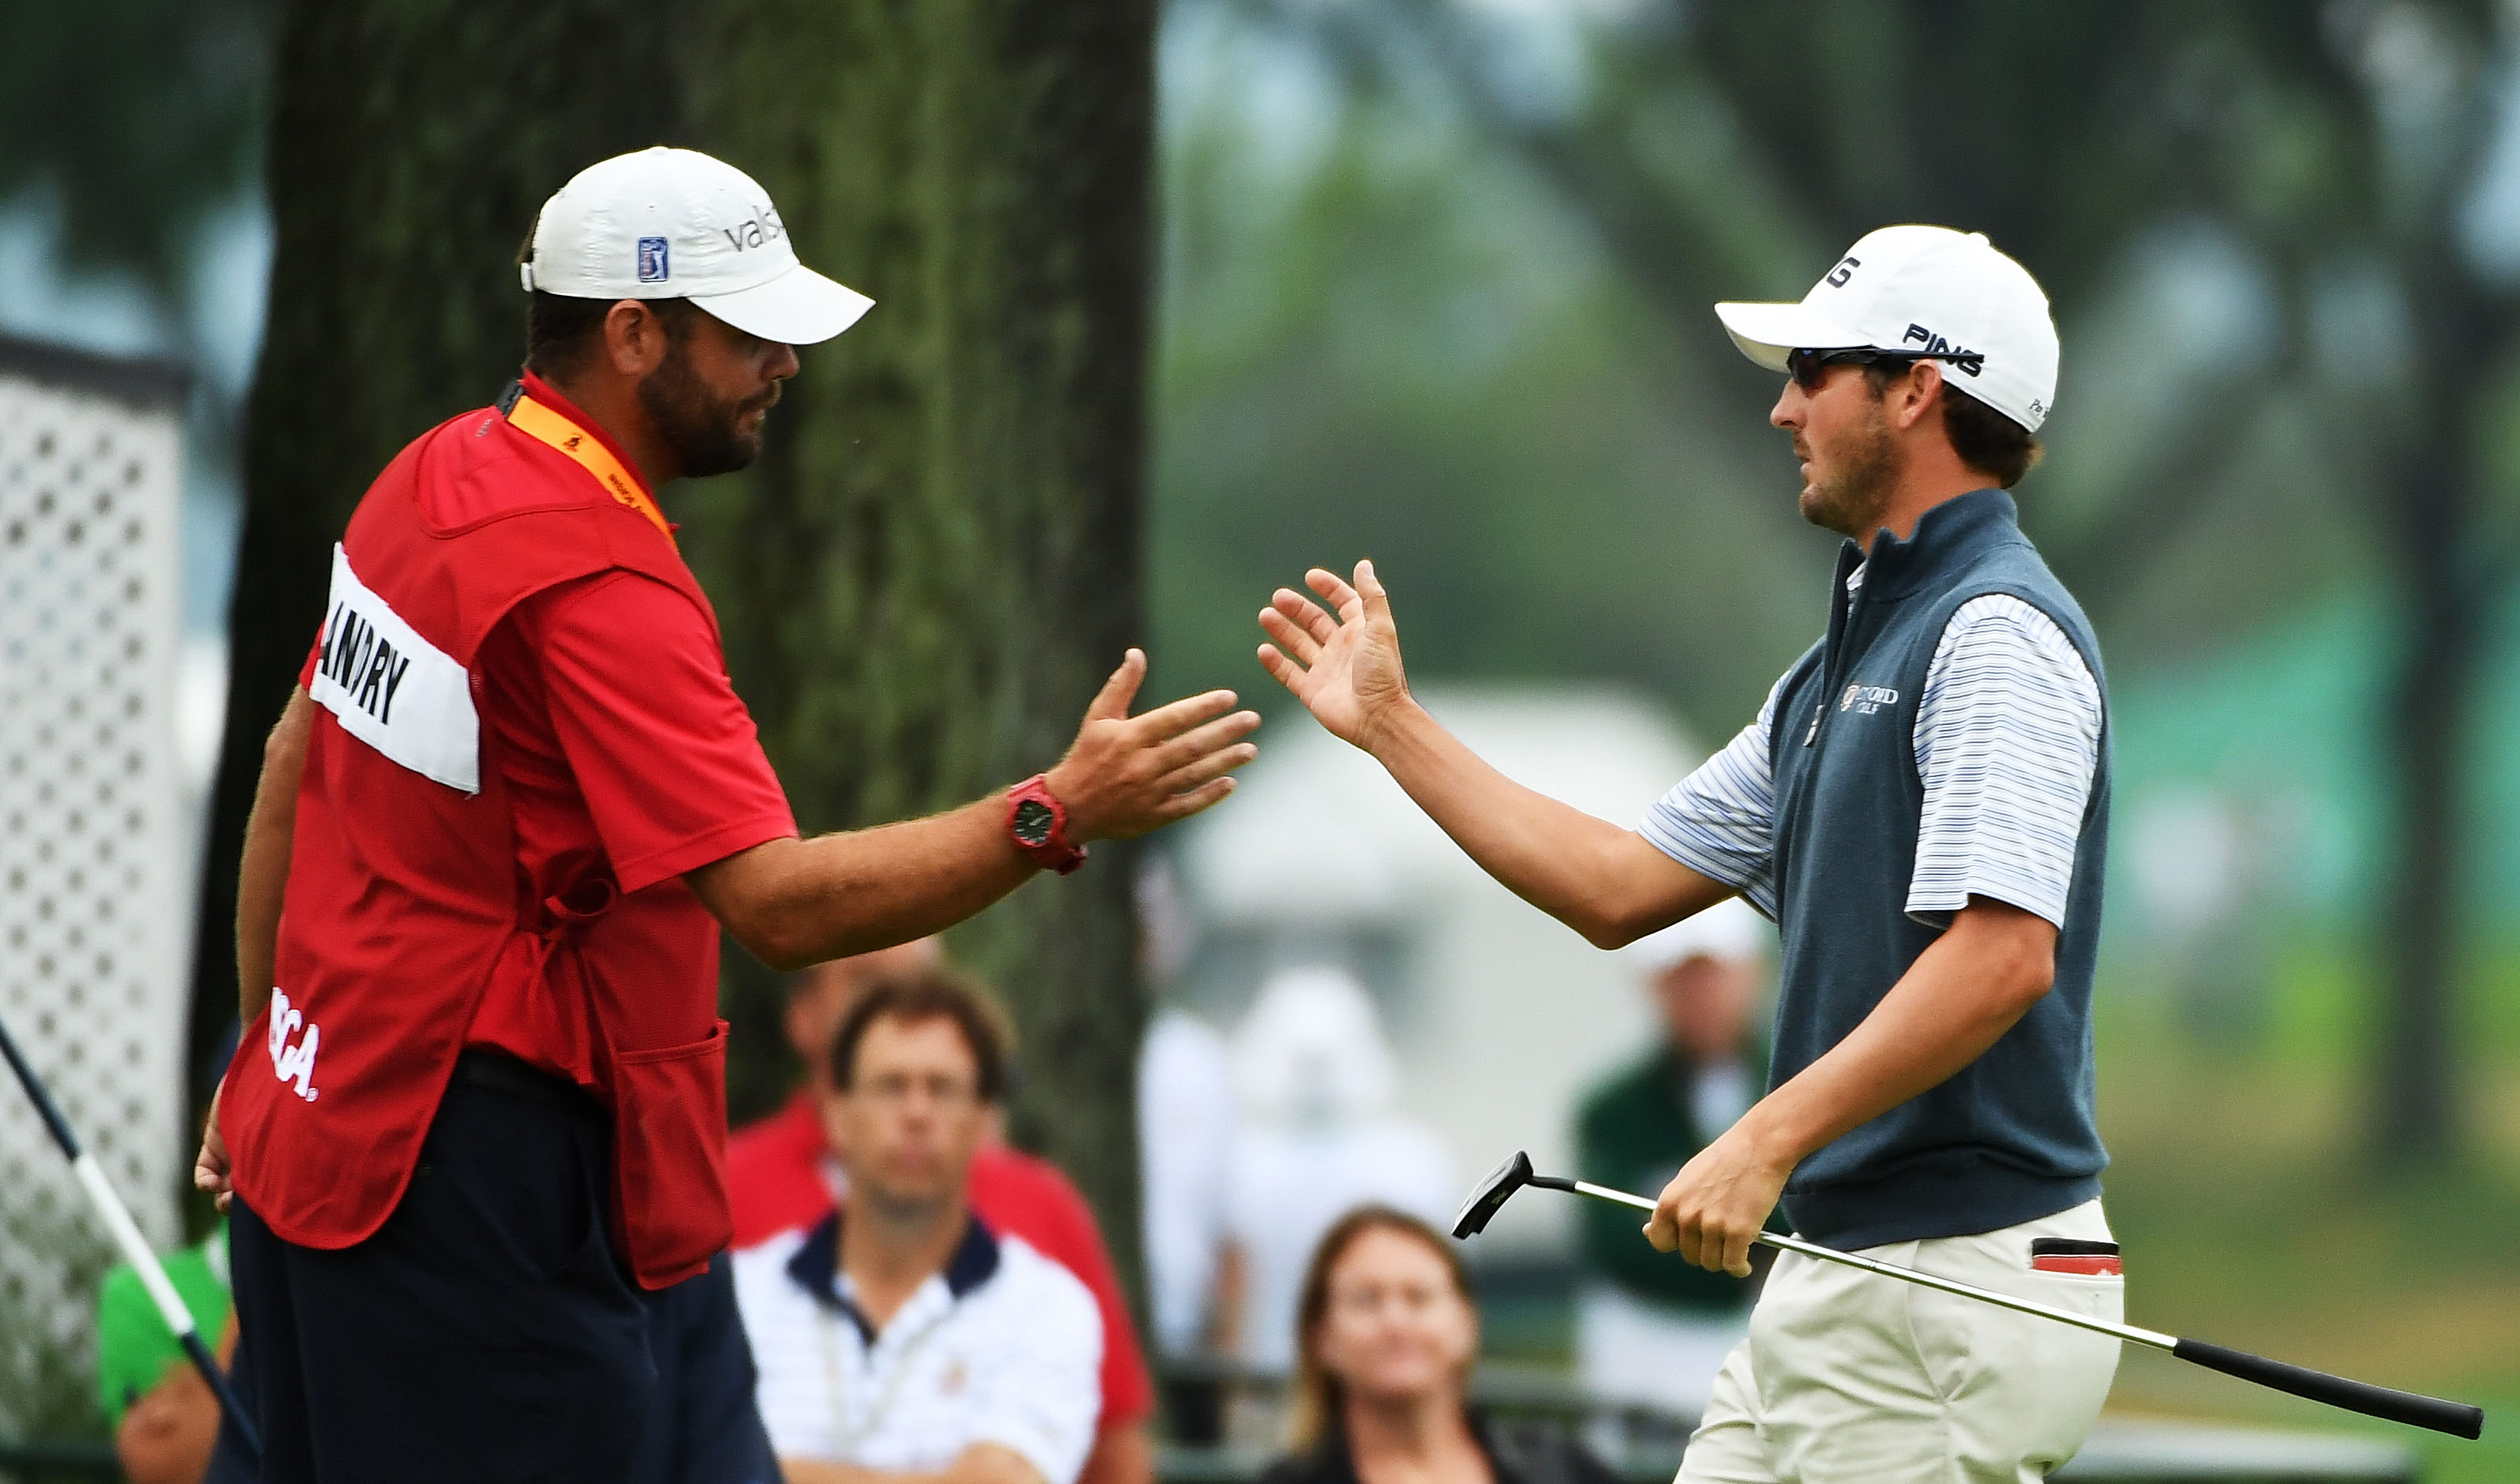 Andrew Landry extends a hand to his caddie, Kevin Ensor, after finishing the first round of the U.S. Open  on Friday. (Getty Images)